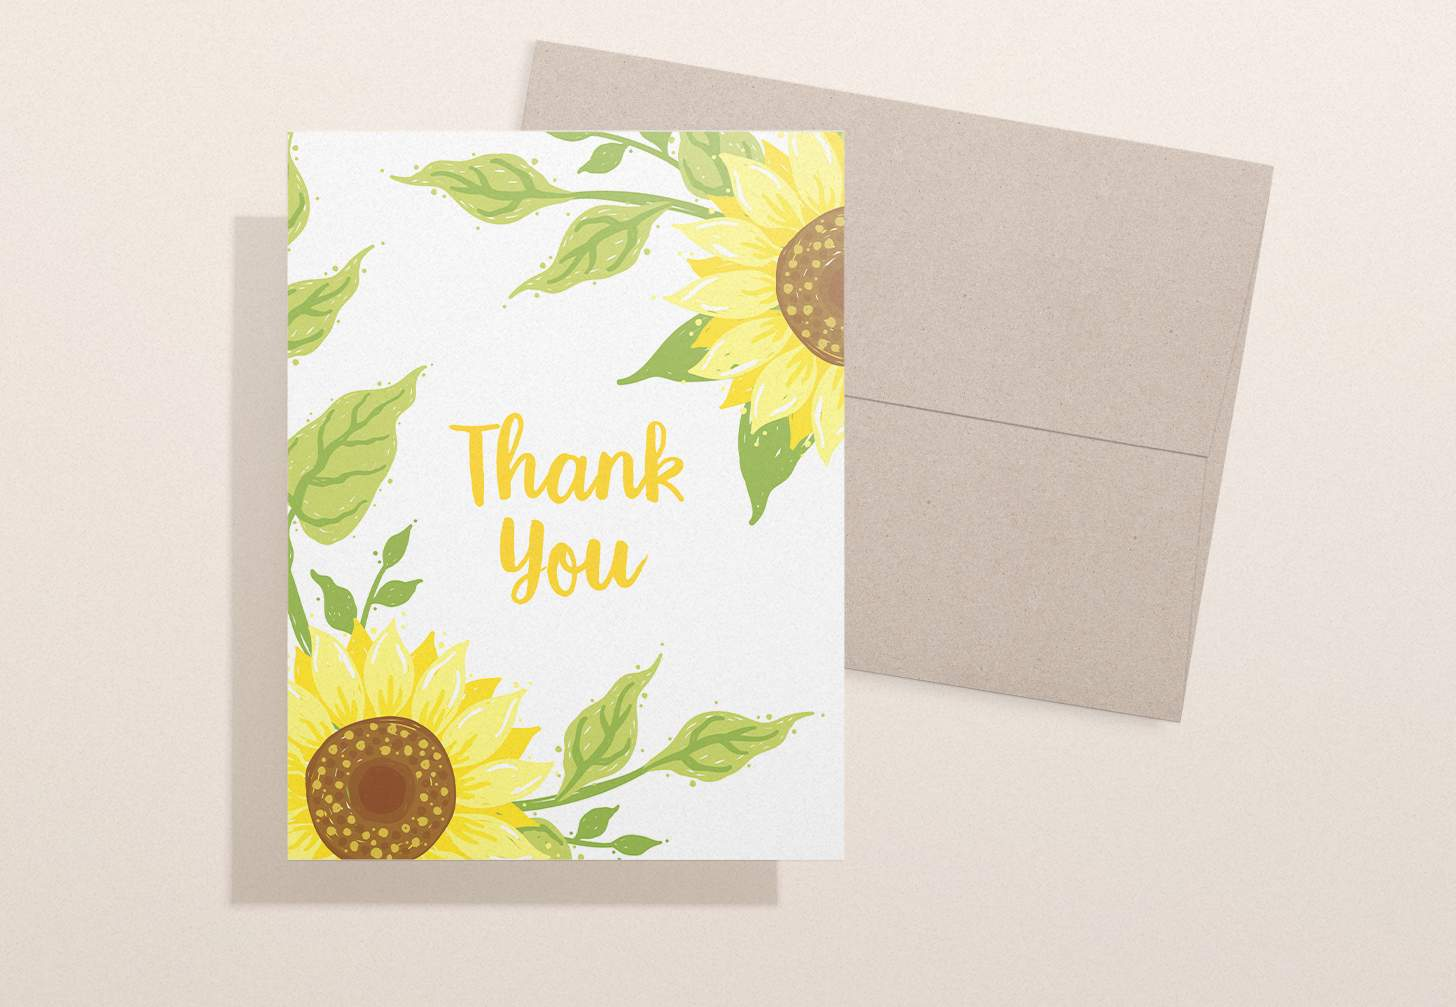 Card with two yellow sunflowers with a brown envelope